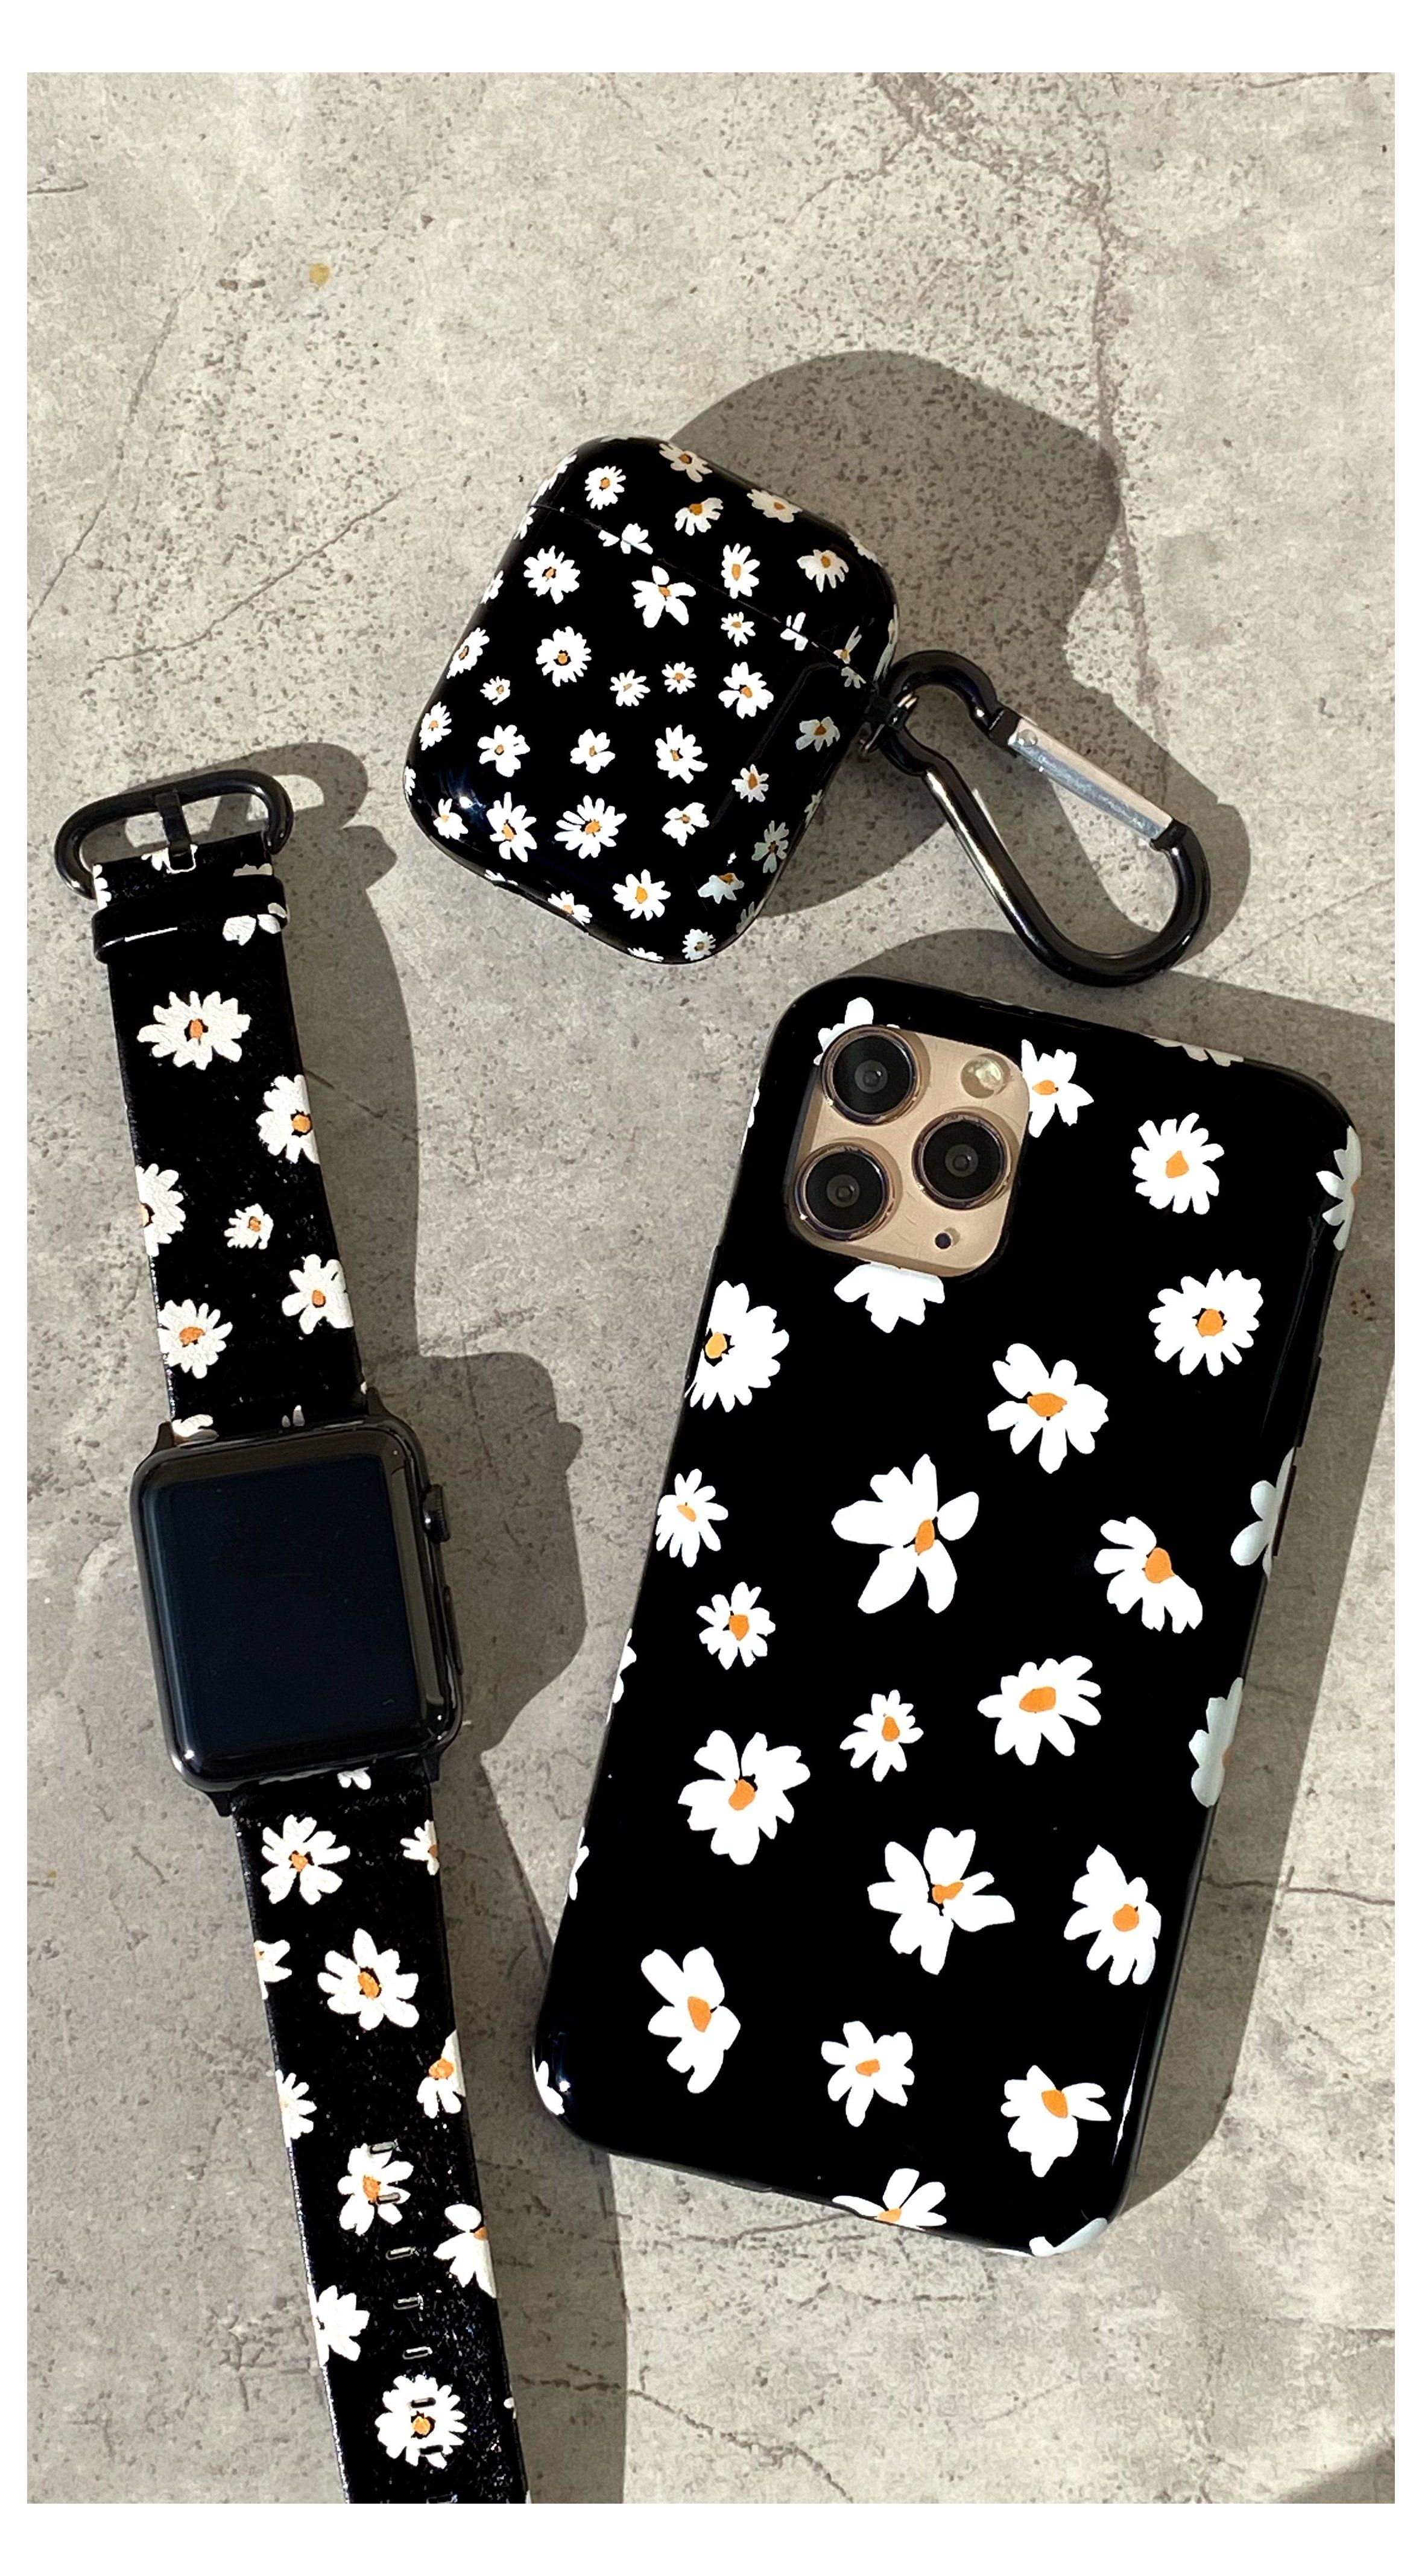 Daisy for iphone apple watch airpods elemental cases